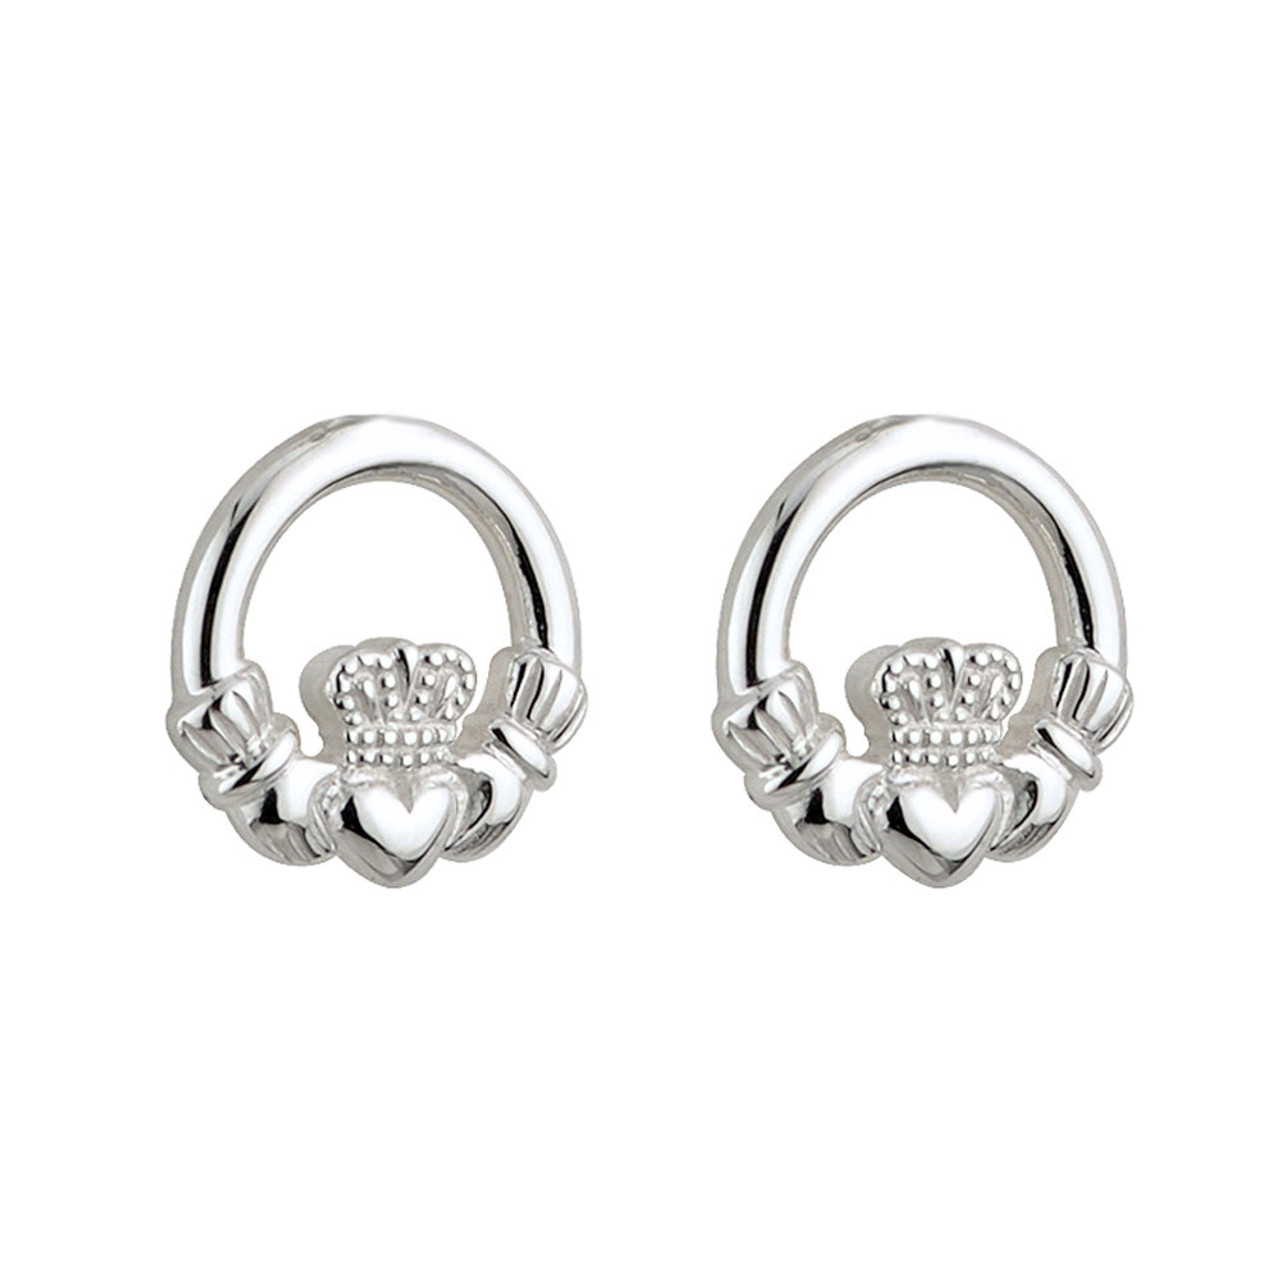 Child Sterling Silver Claddagh Stud Earrings